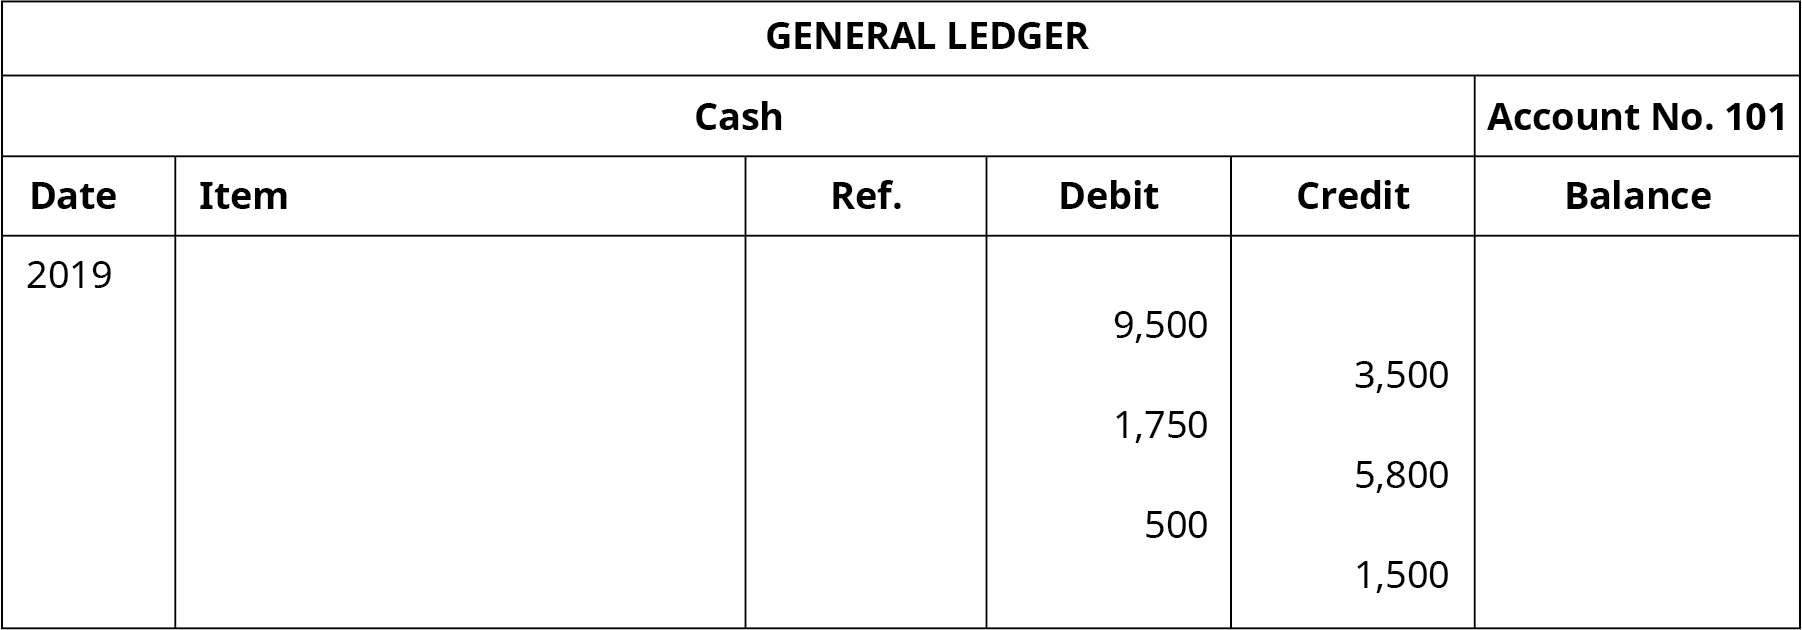 "A General Ledger titled ""Cash Account No. 101"" with six columns. Date: 2019. Six columns labeled left to right: Date, Item, Reference, Debit, Credit, Balance. Debit: 9,500; Balance: 9,500. Credit: 3,500; Balance: 6,000. Debit: 1,750; Balance: 7,750. Credit: 5,800; Balance: 1,950. Debit: 500; Balance: 2,450. Credit: 1,500; Balance: 950."